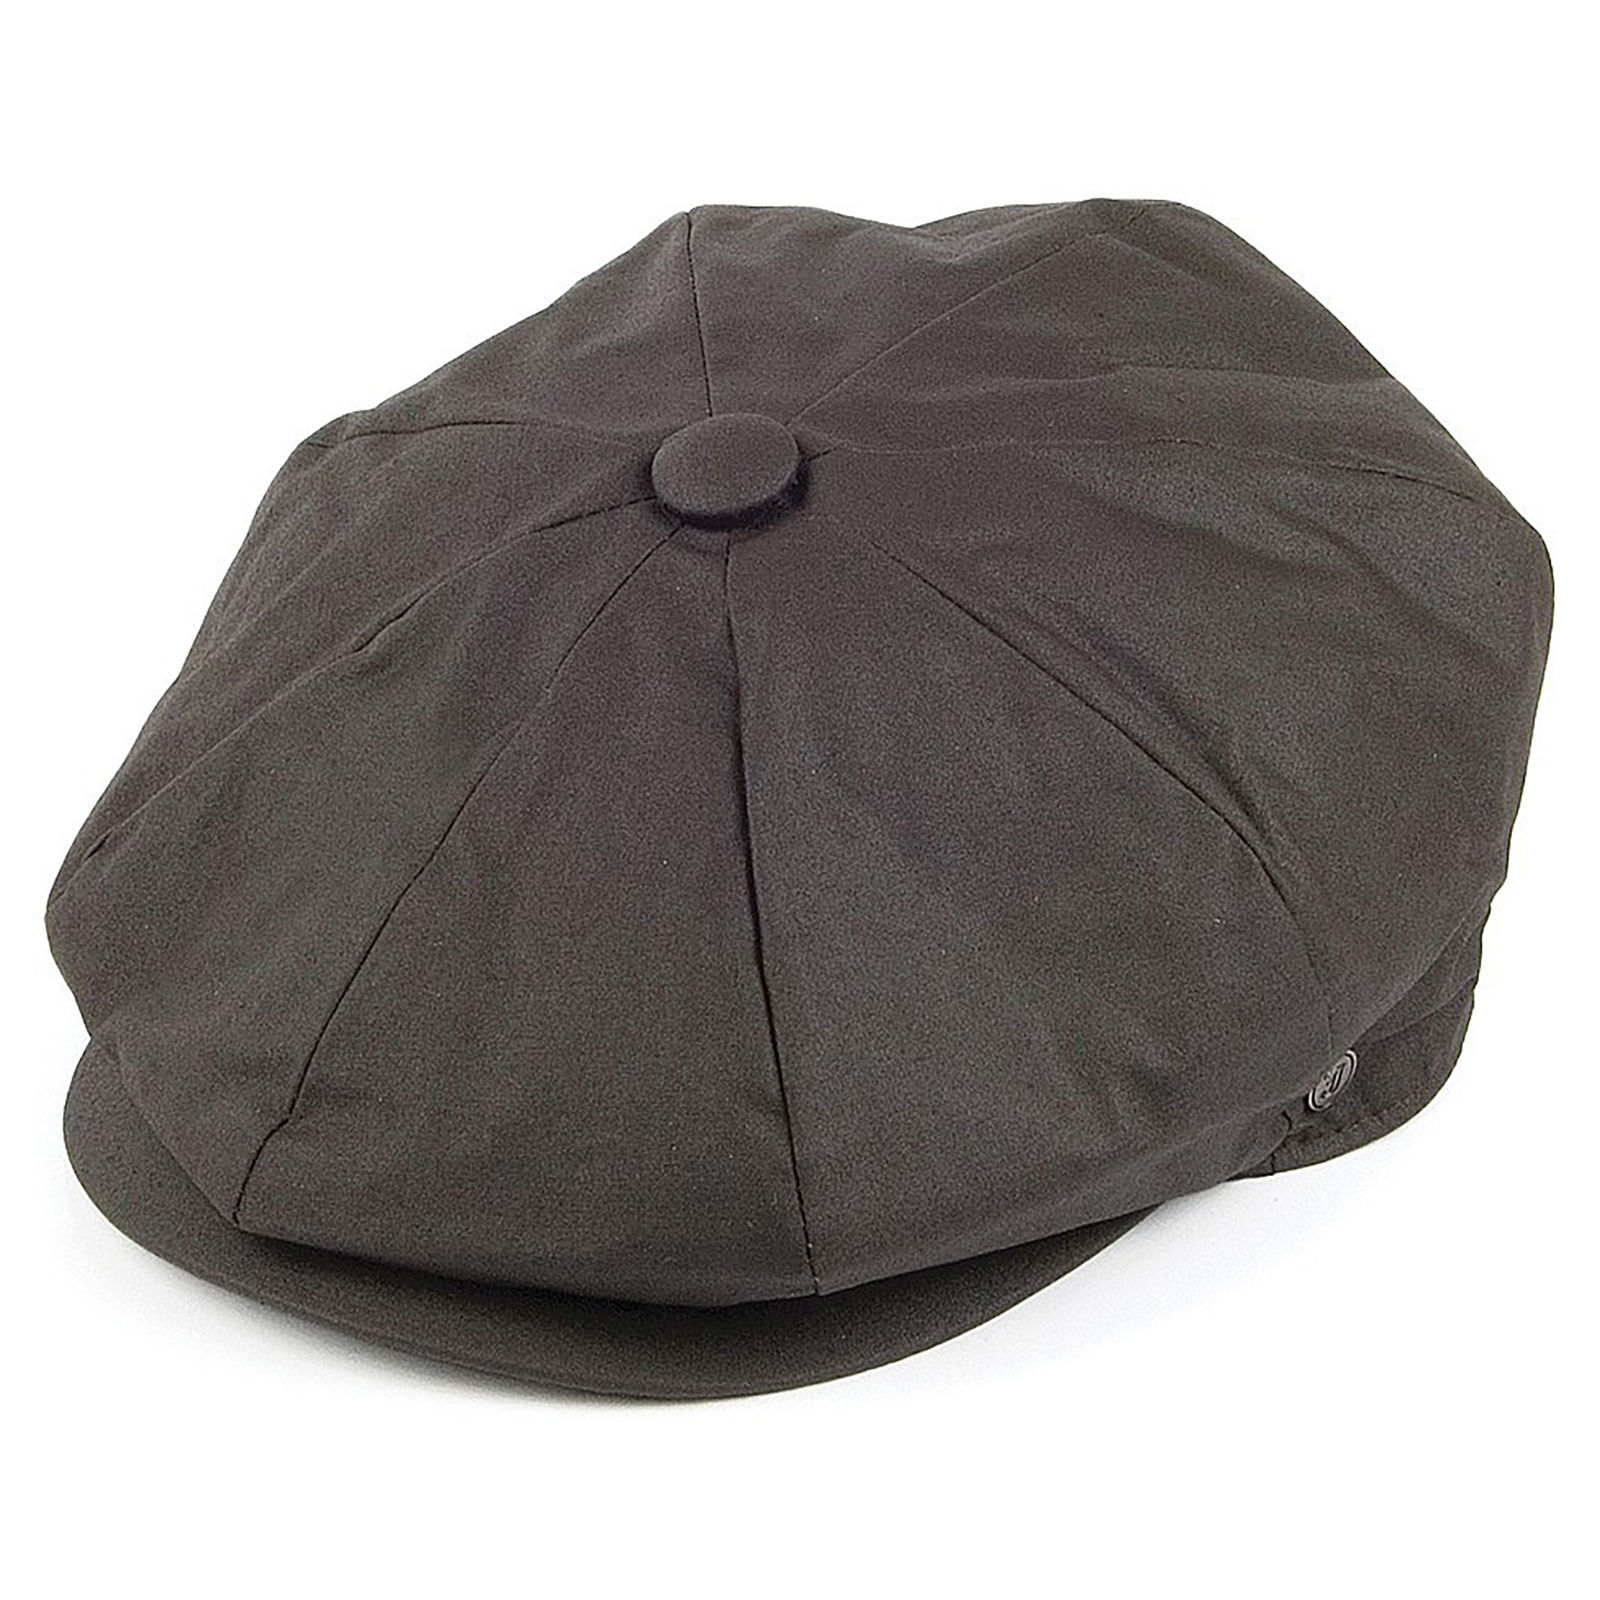 8adfe4196da16 Details about Jaxon Brown Oilcloth Cotton 8 Panel Newsboy 1920s Peaky  Blinders Style Flat Cap